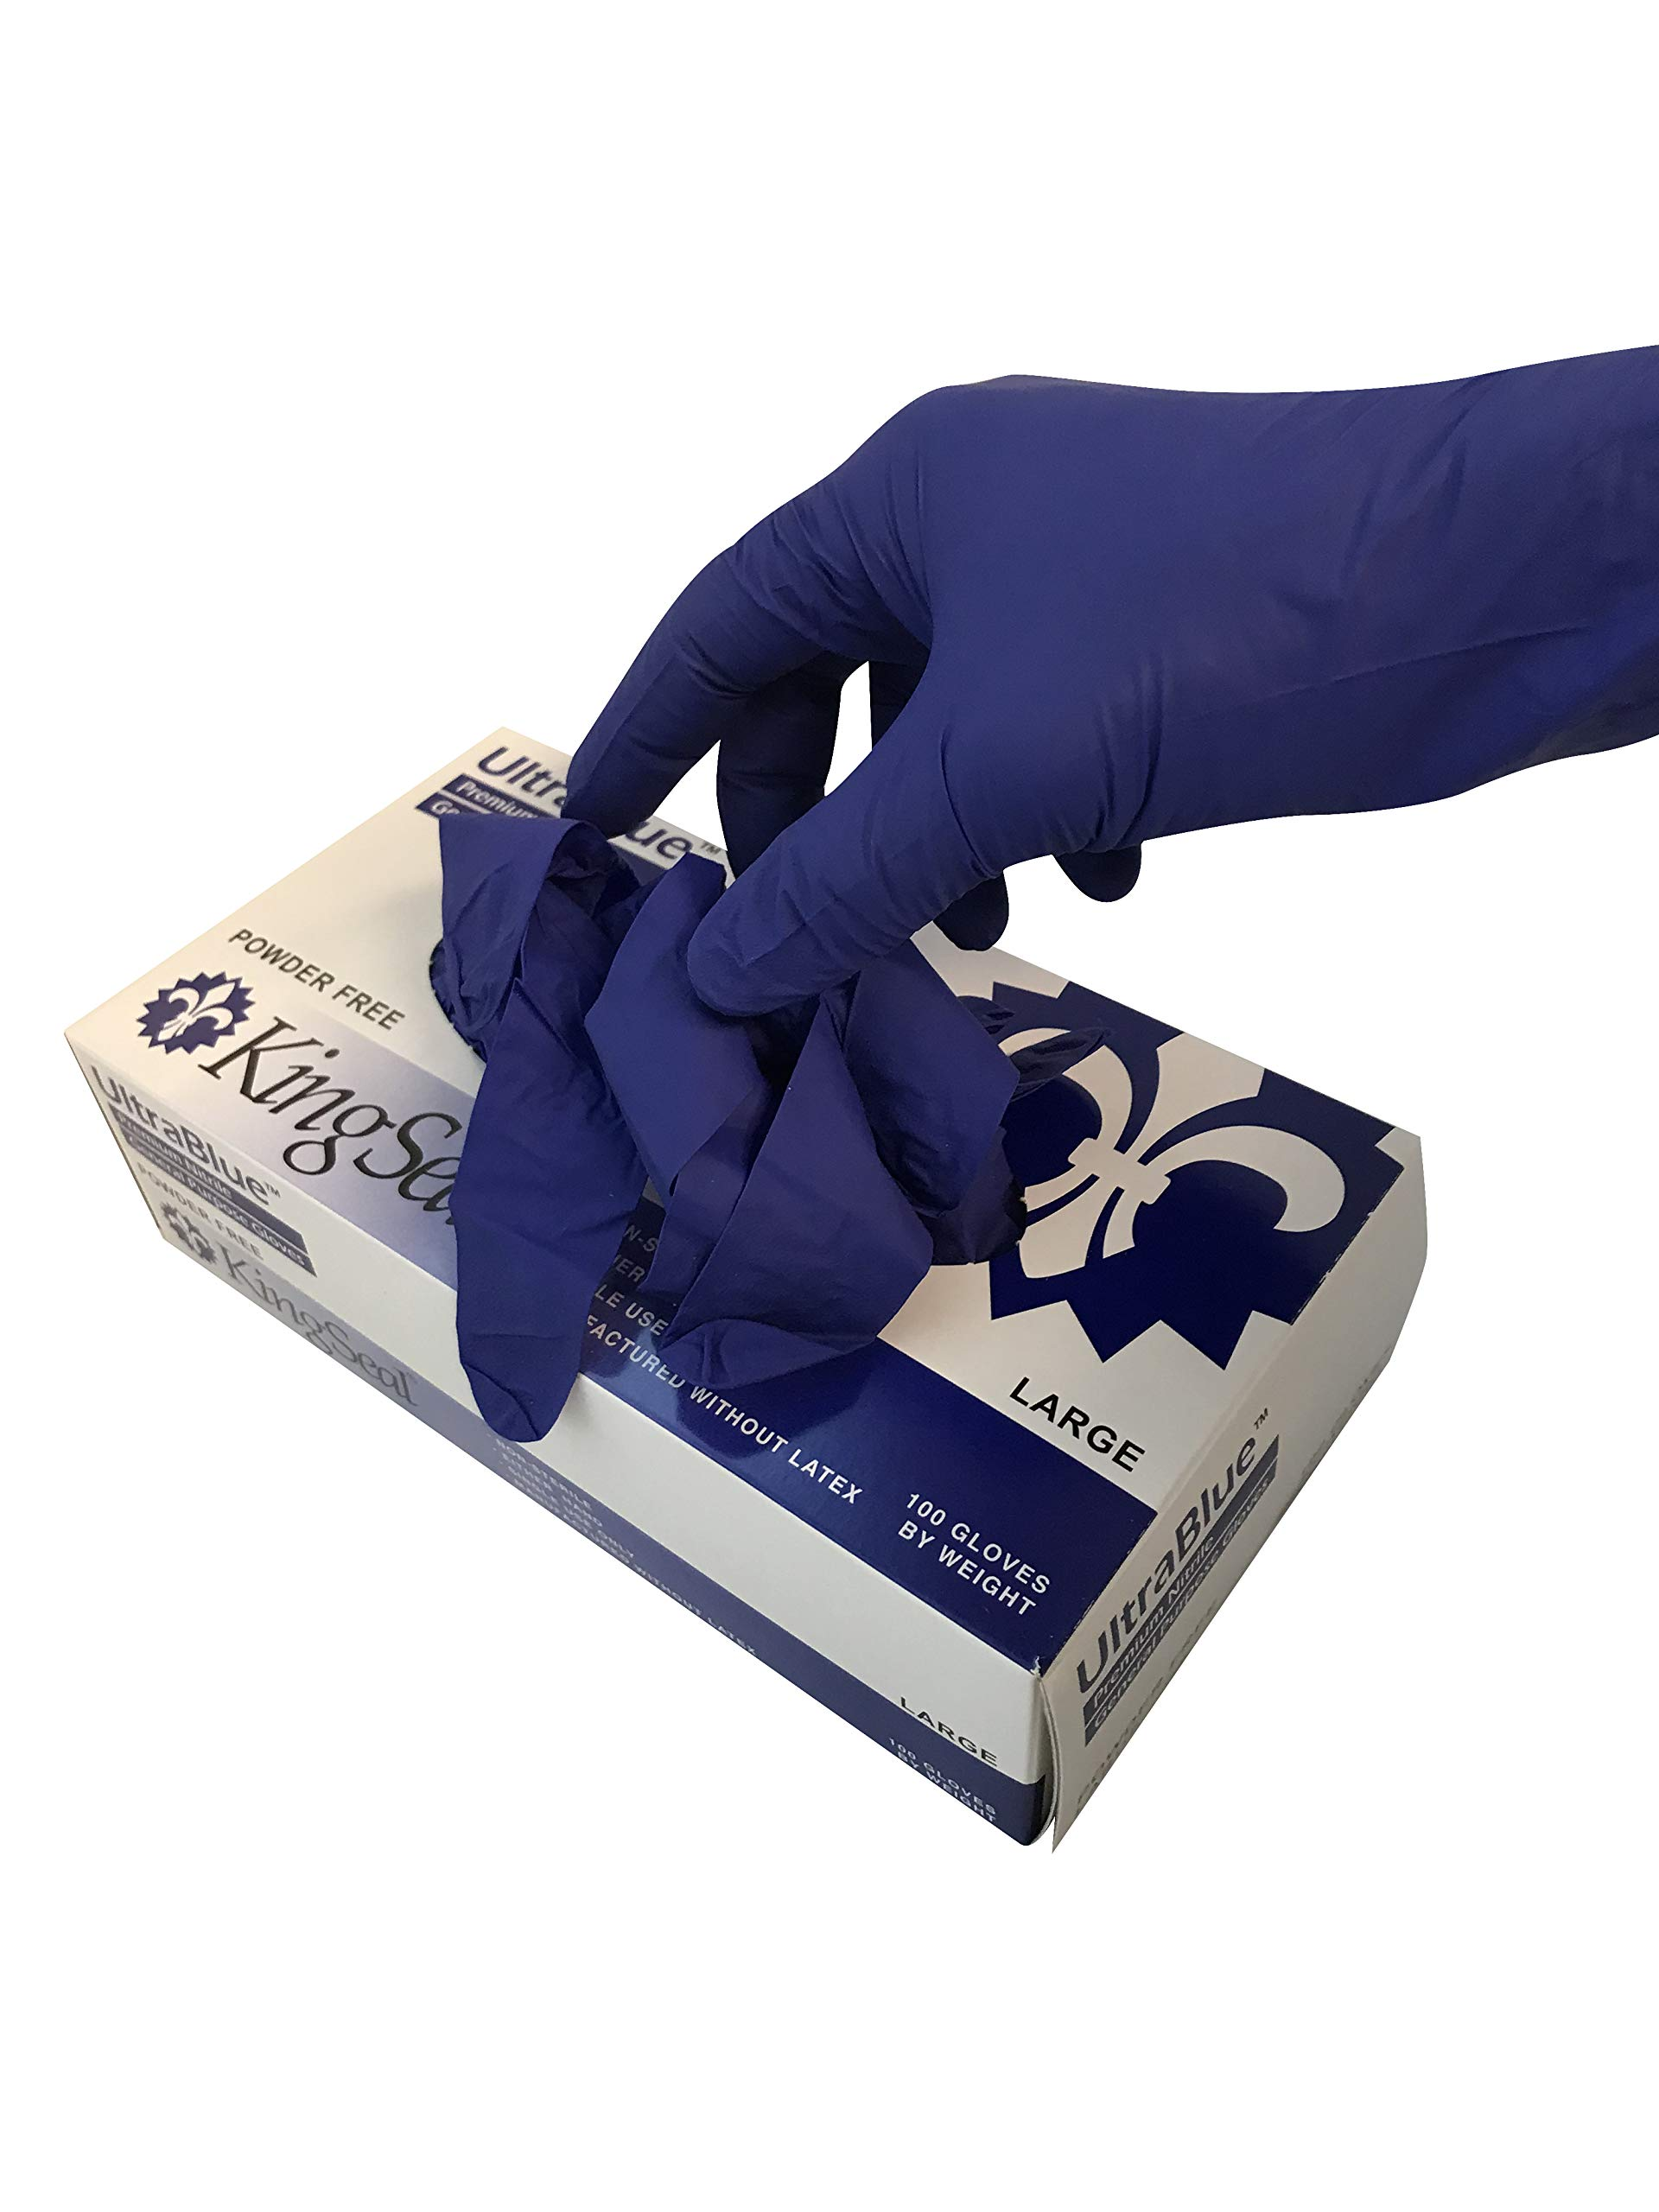 KingSeal UltraBlue Cobalt Indigo Blue Disposable Gloves, 4 mil, Latex-Free, Textured, Size Large - 4 boxes of 100 each (400pcs total)